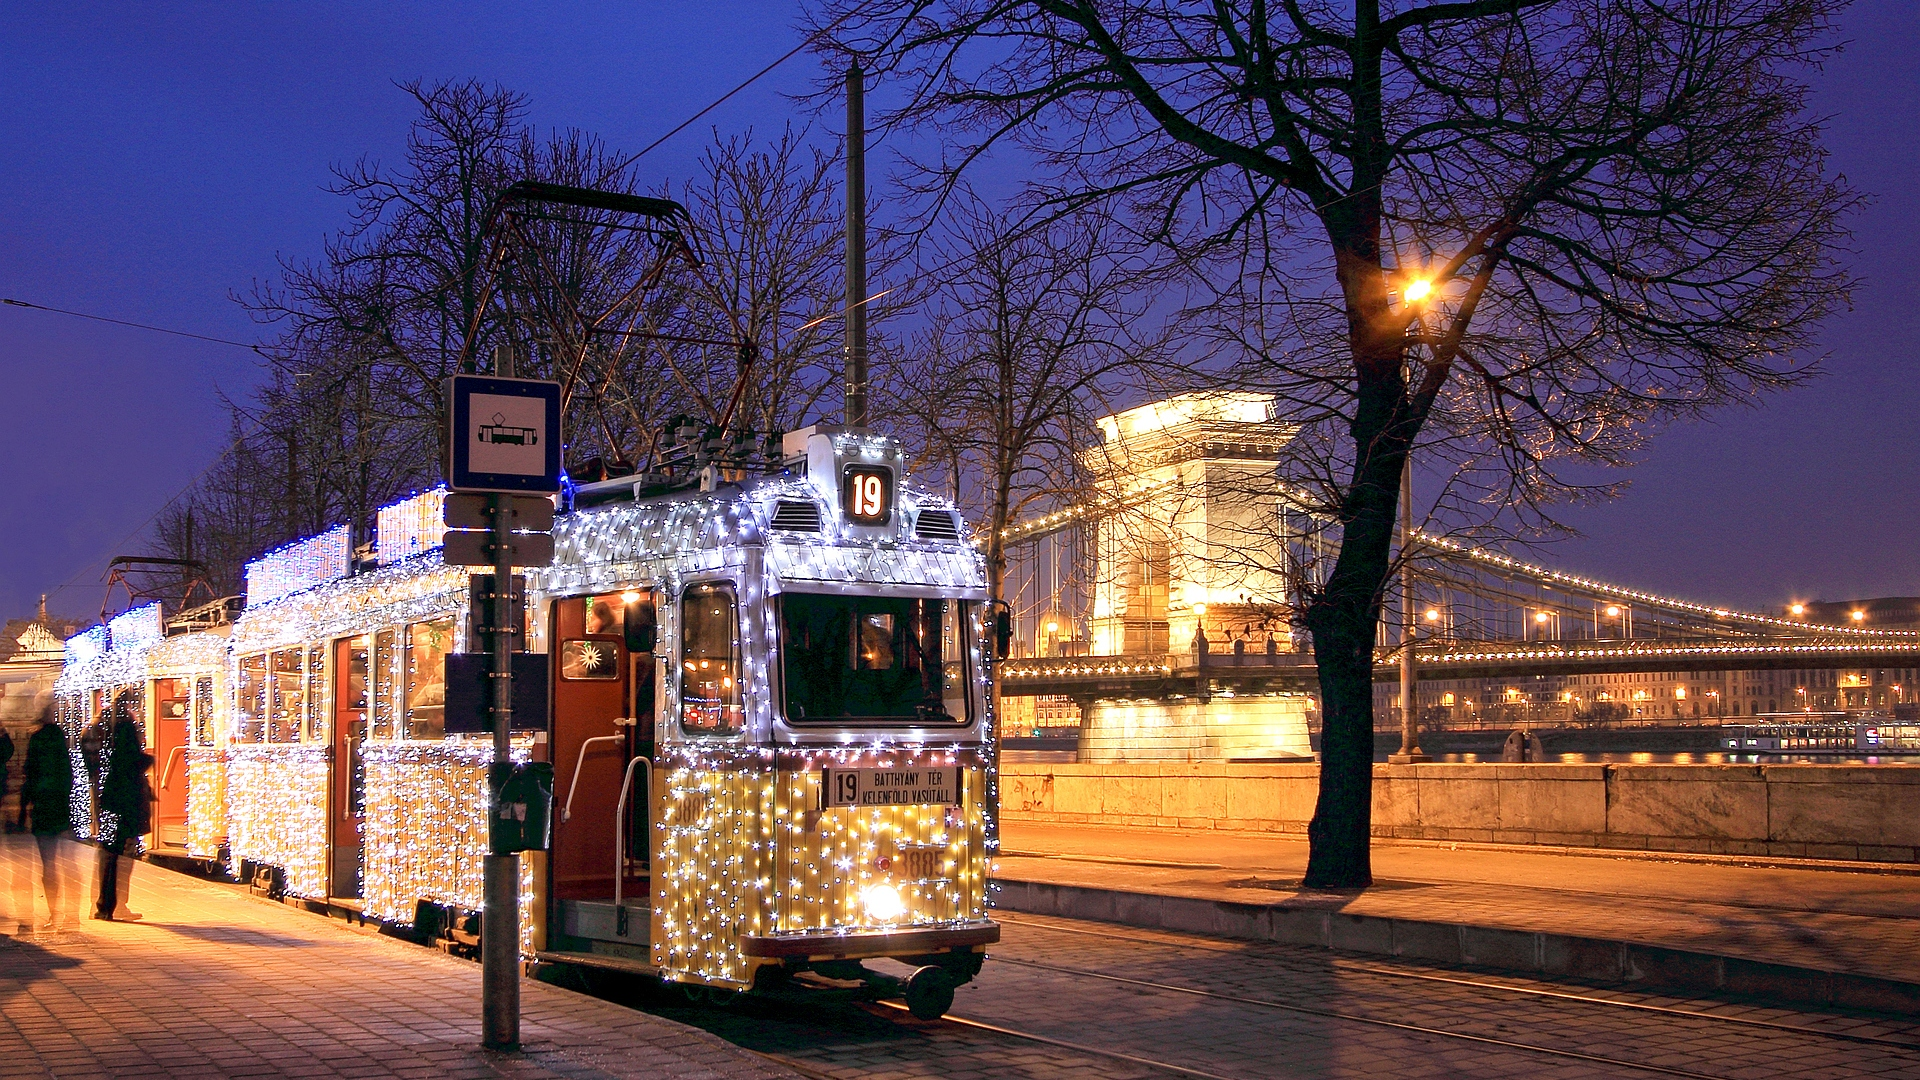 Christmas tram - the most spectacular ride in Europe